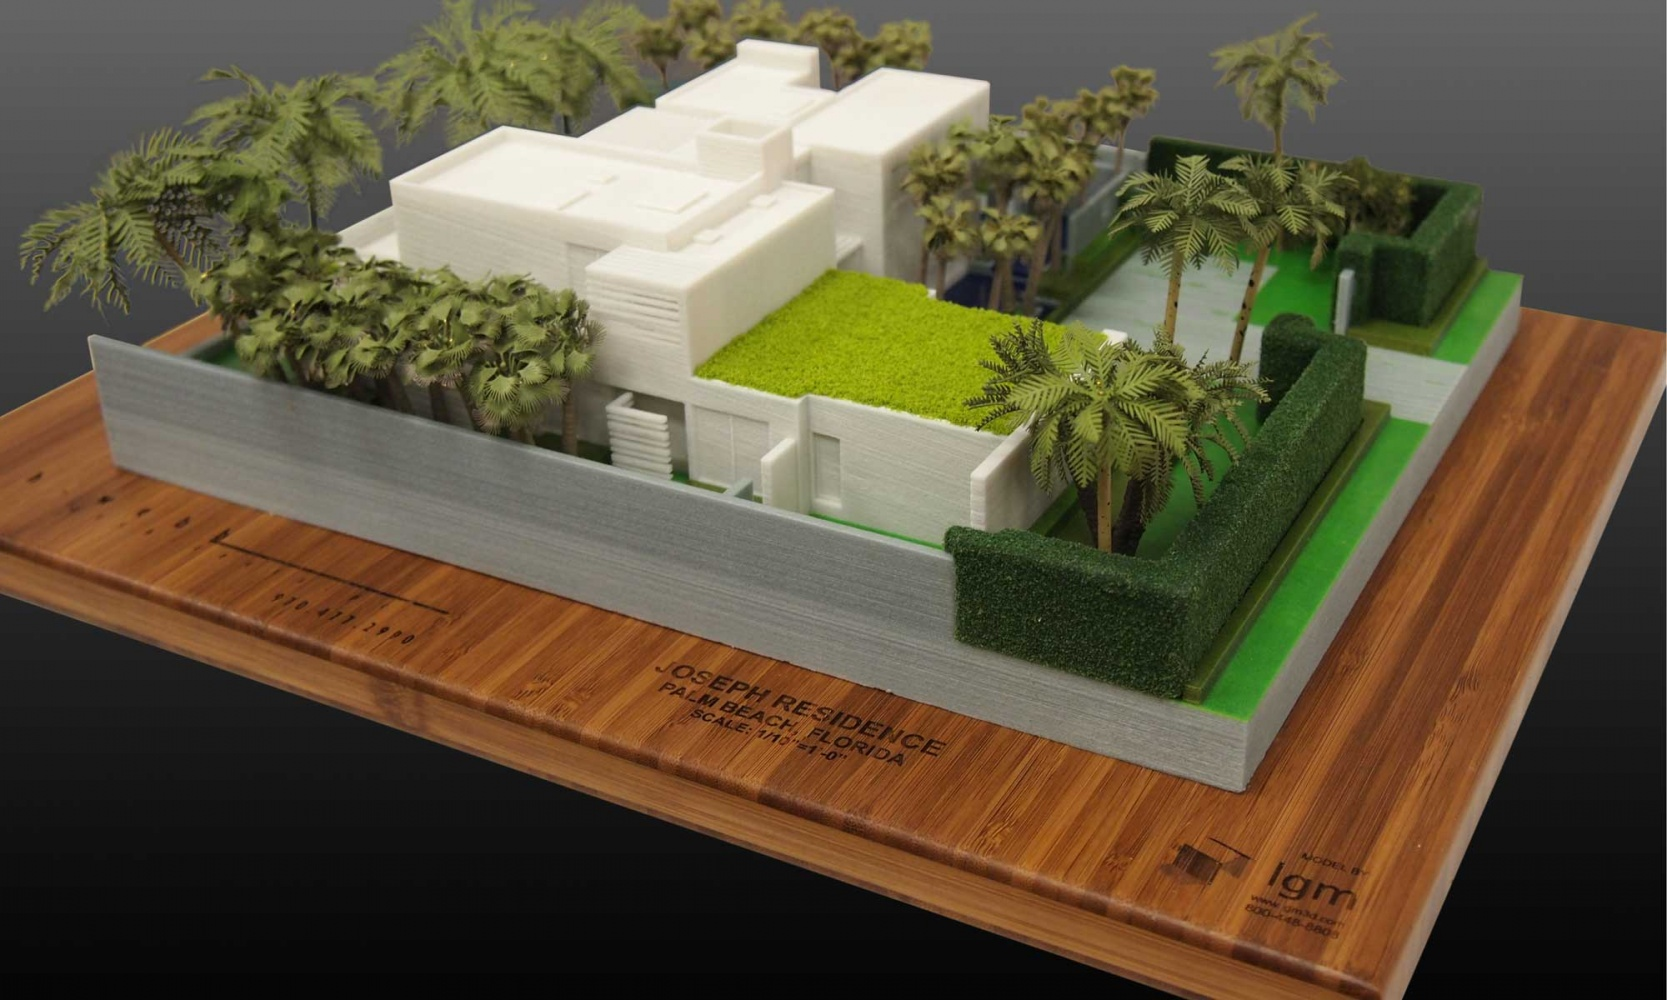 Color 3d print of a private residence lgm for 3d printer house for sale